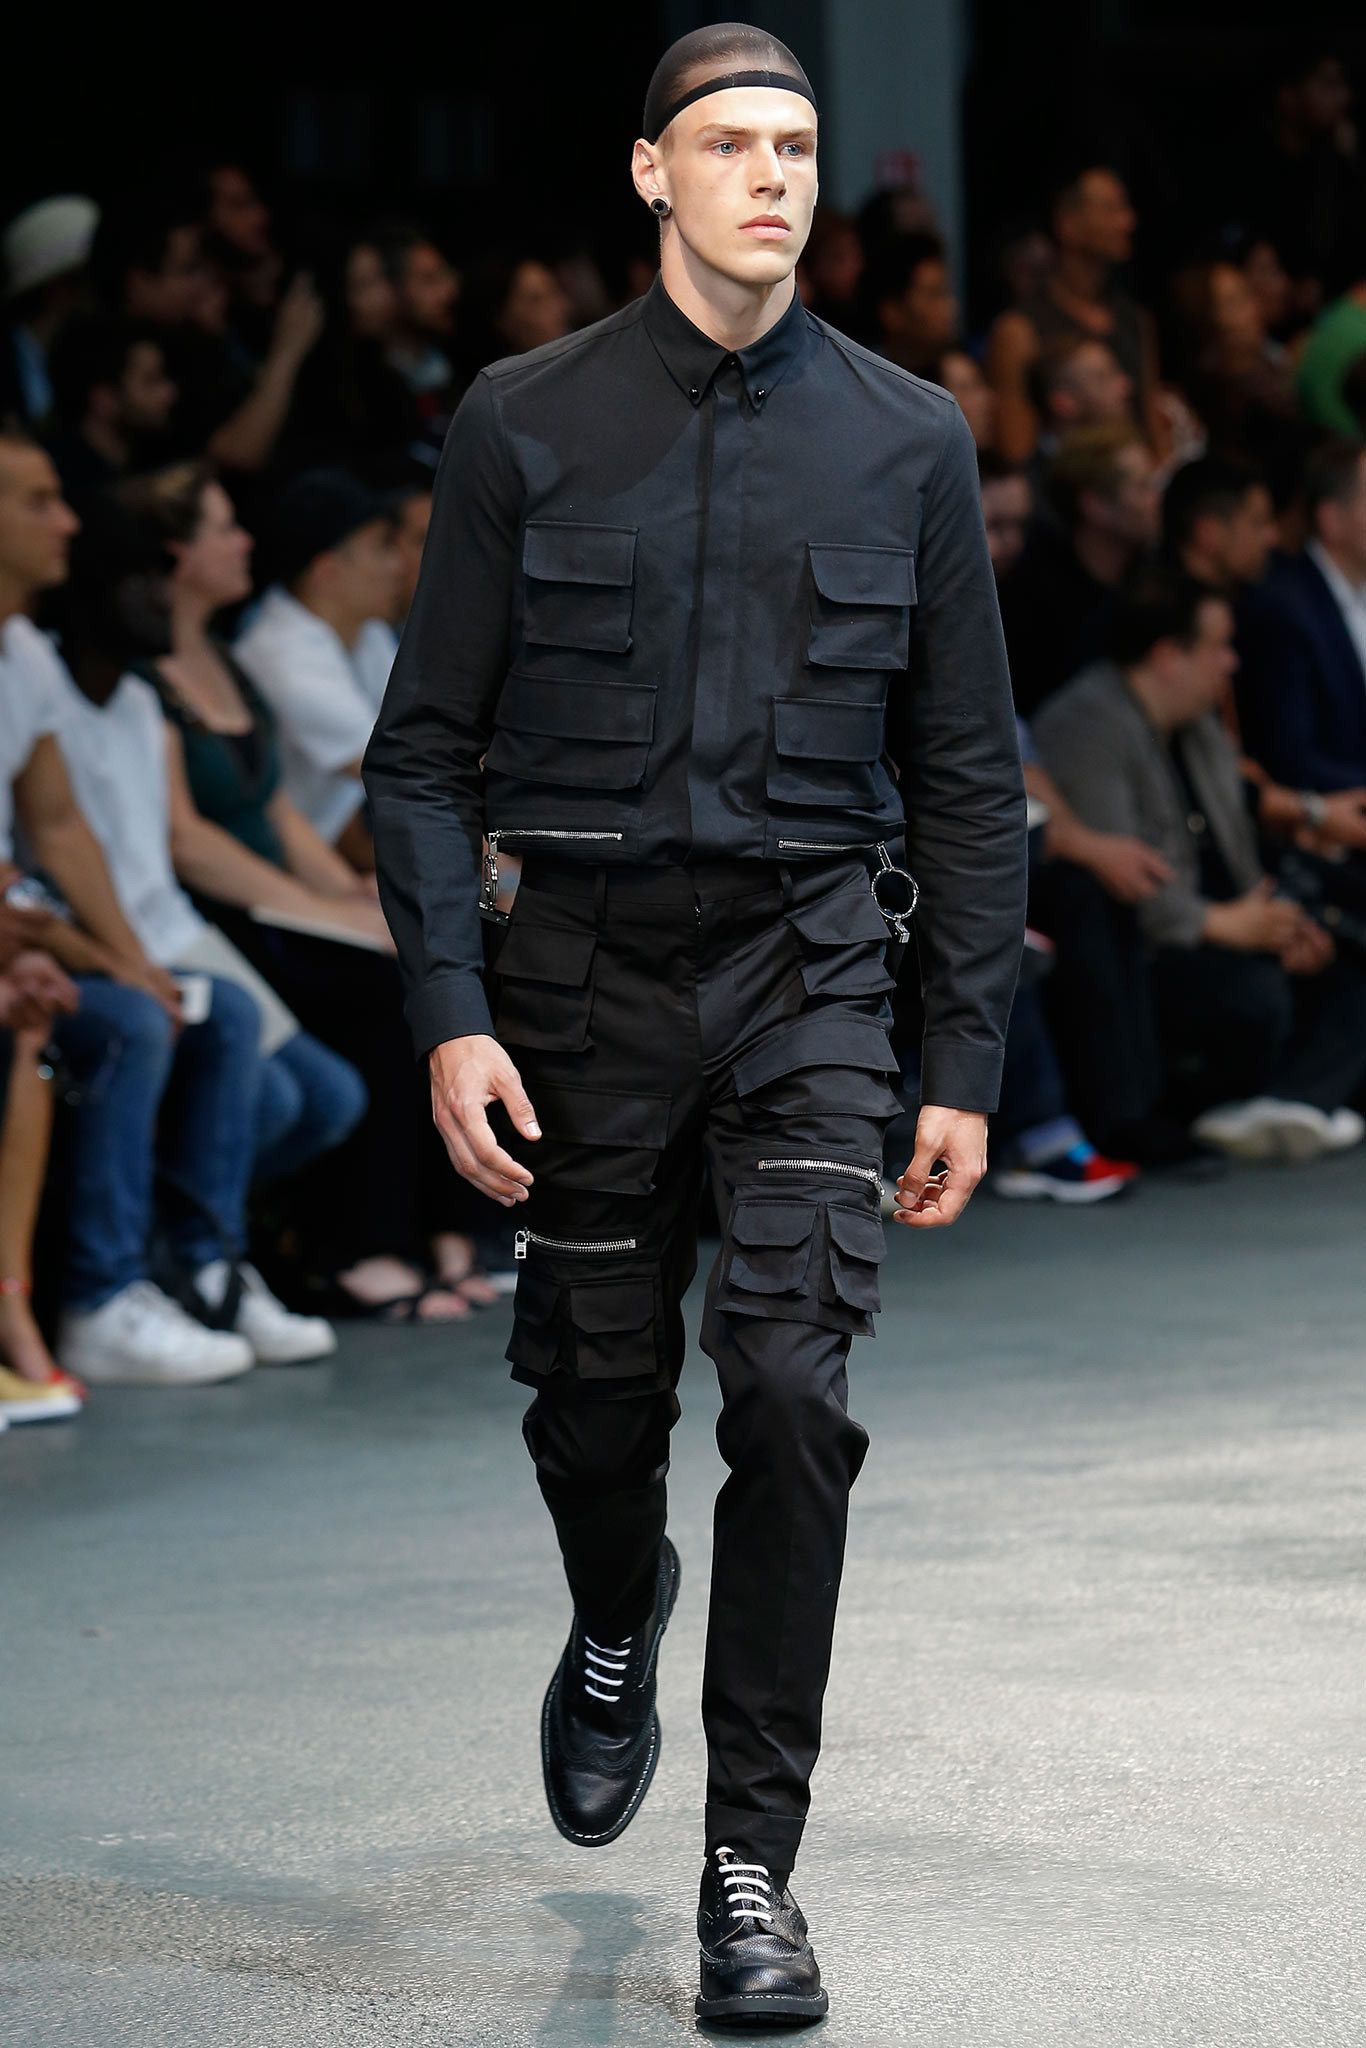 Givenchy Spring 2015 Menswear Fashion Show in 2020